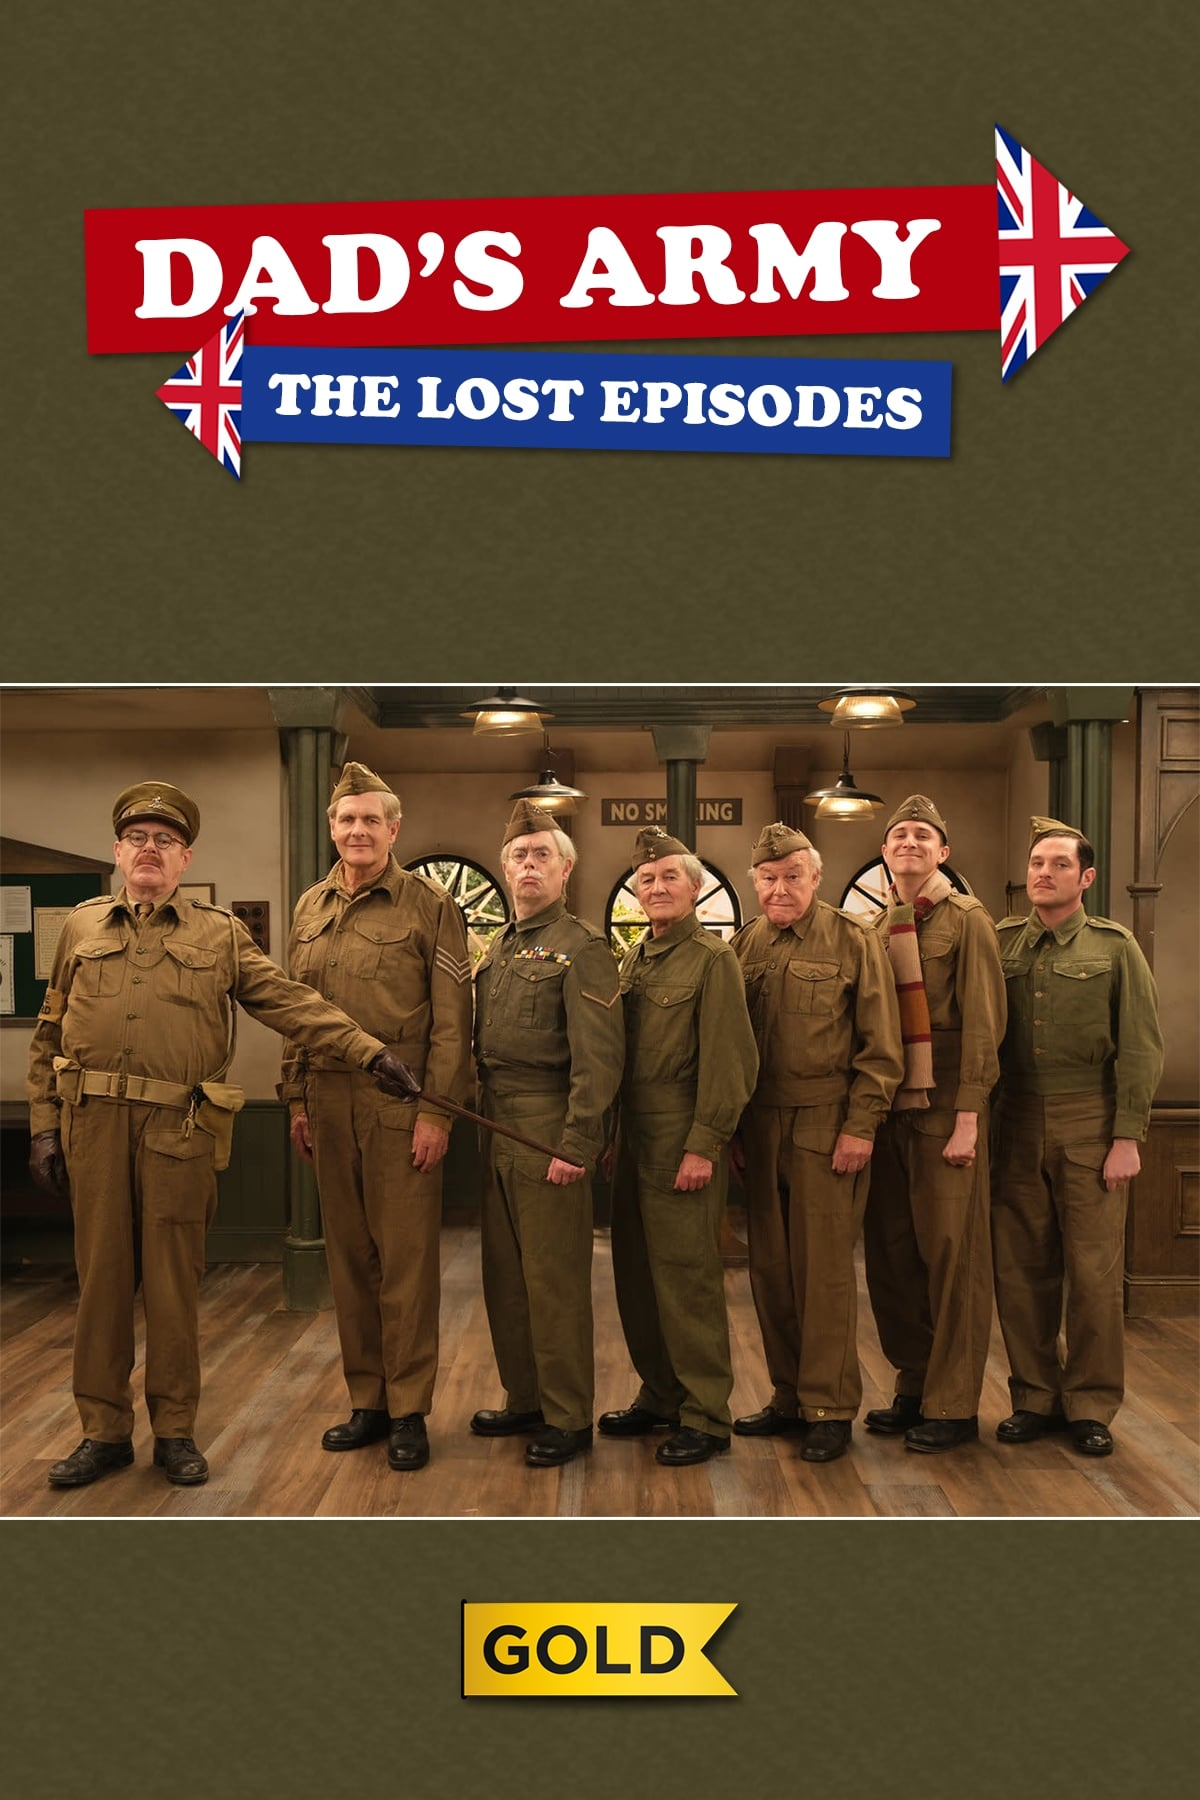 Dad's Army: The Lost Episodes TV Shows About World War Ii